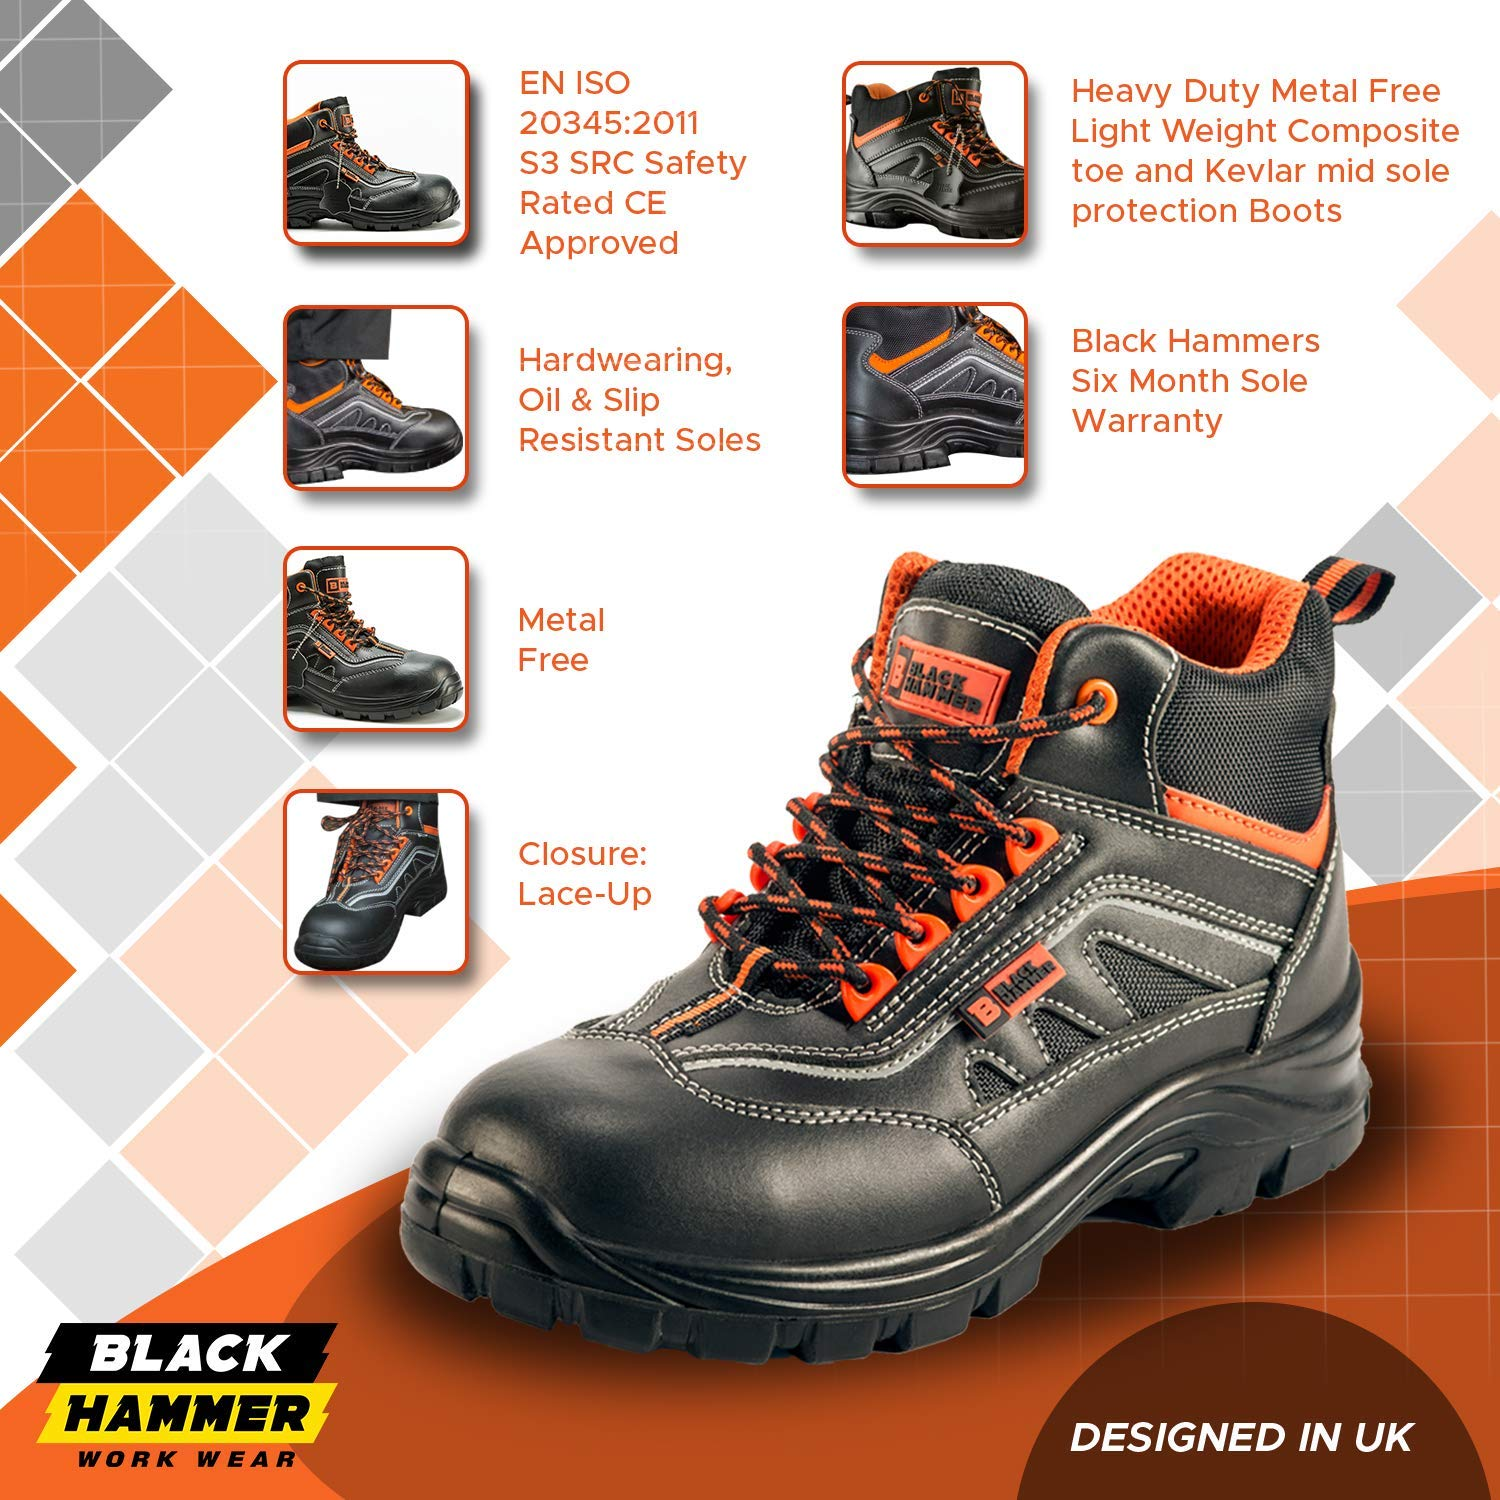 2bbd4556fab Black Hammer Mens Leather Safety Boots S3 SRC Composite Toe Cap Kevlar Non  Metallic Metal Free Lightweight Work Shoes Ankle Hiker 8852  Amazon.co.uk   Shoes ...